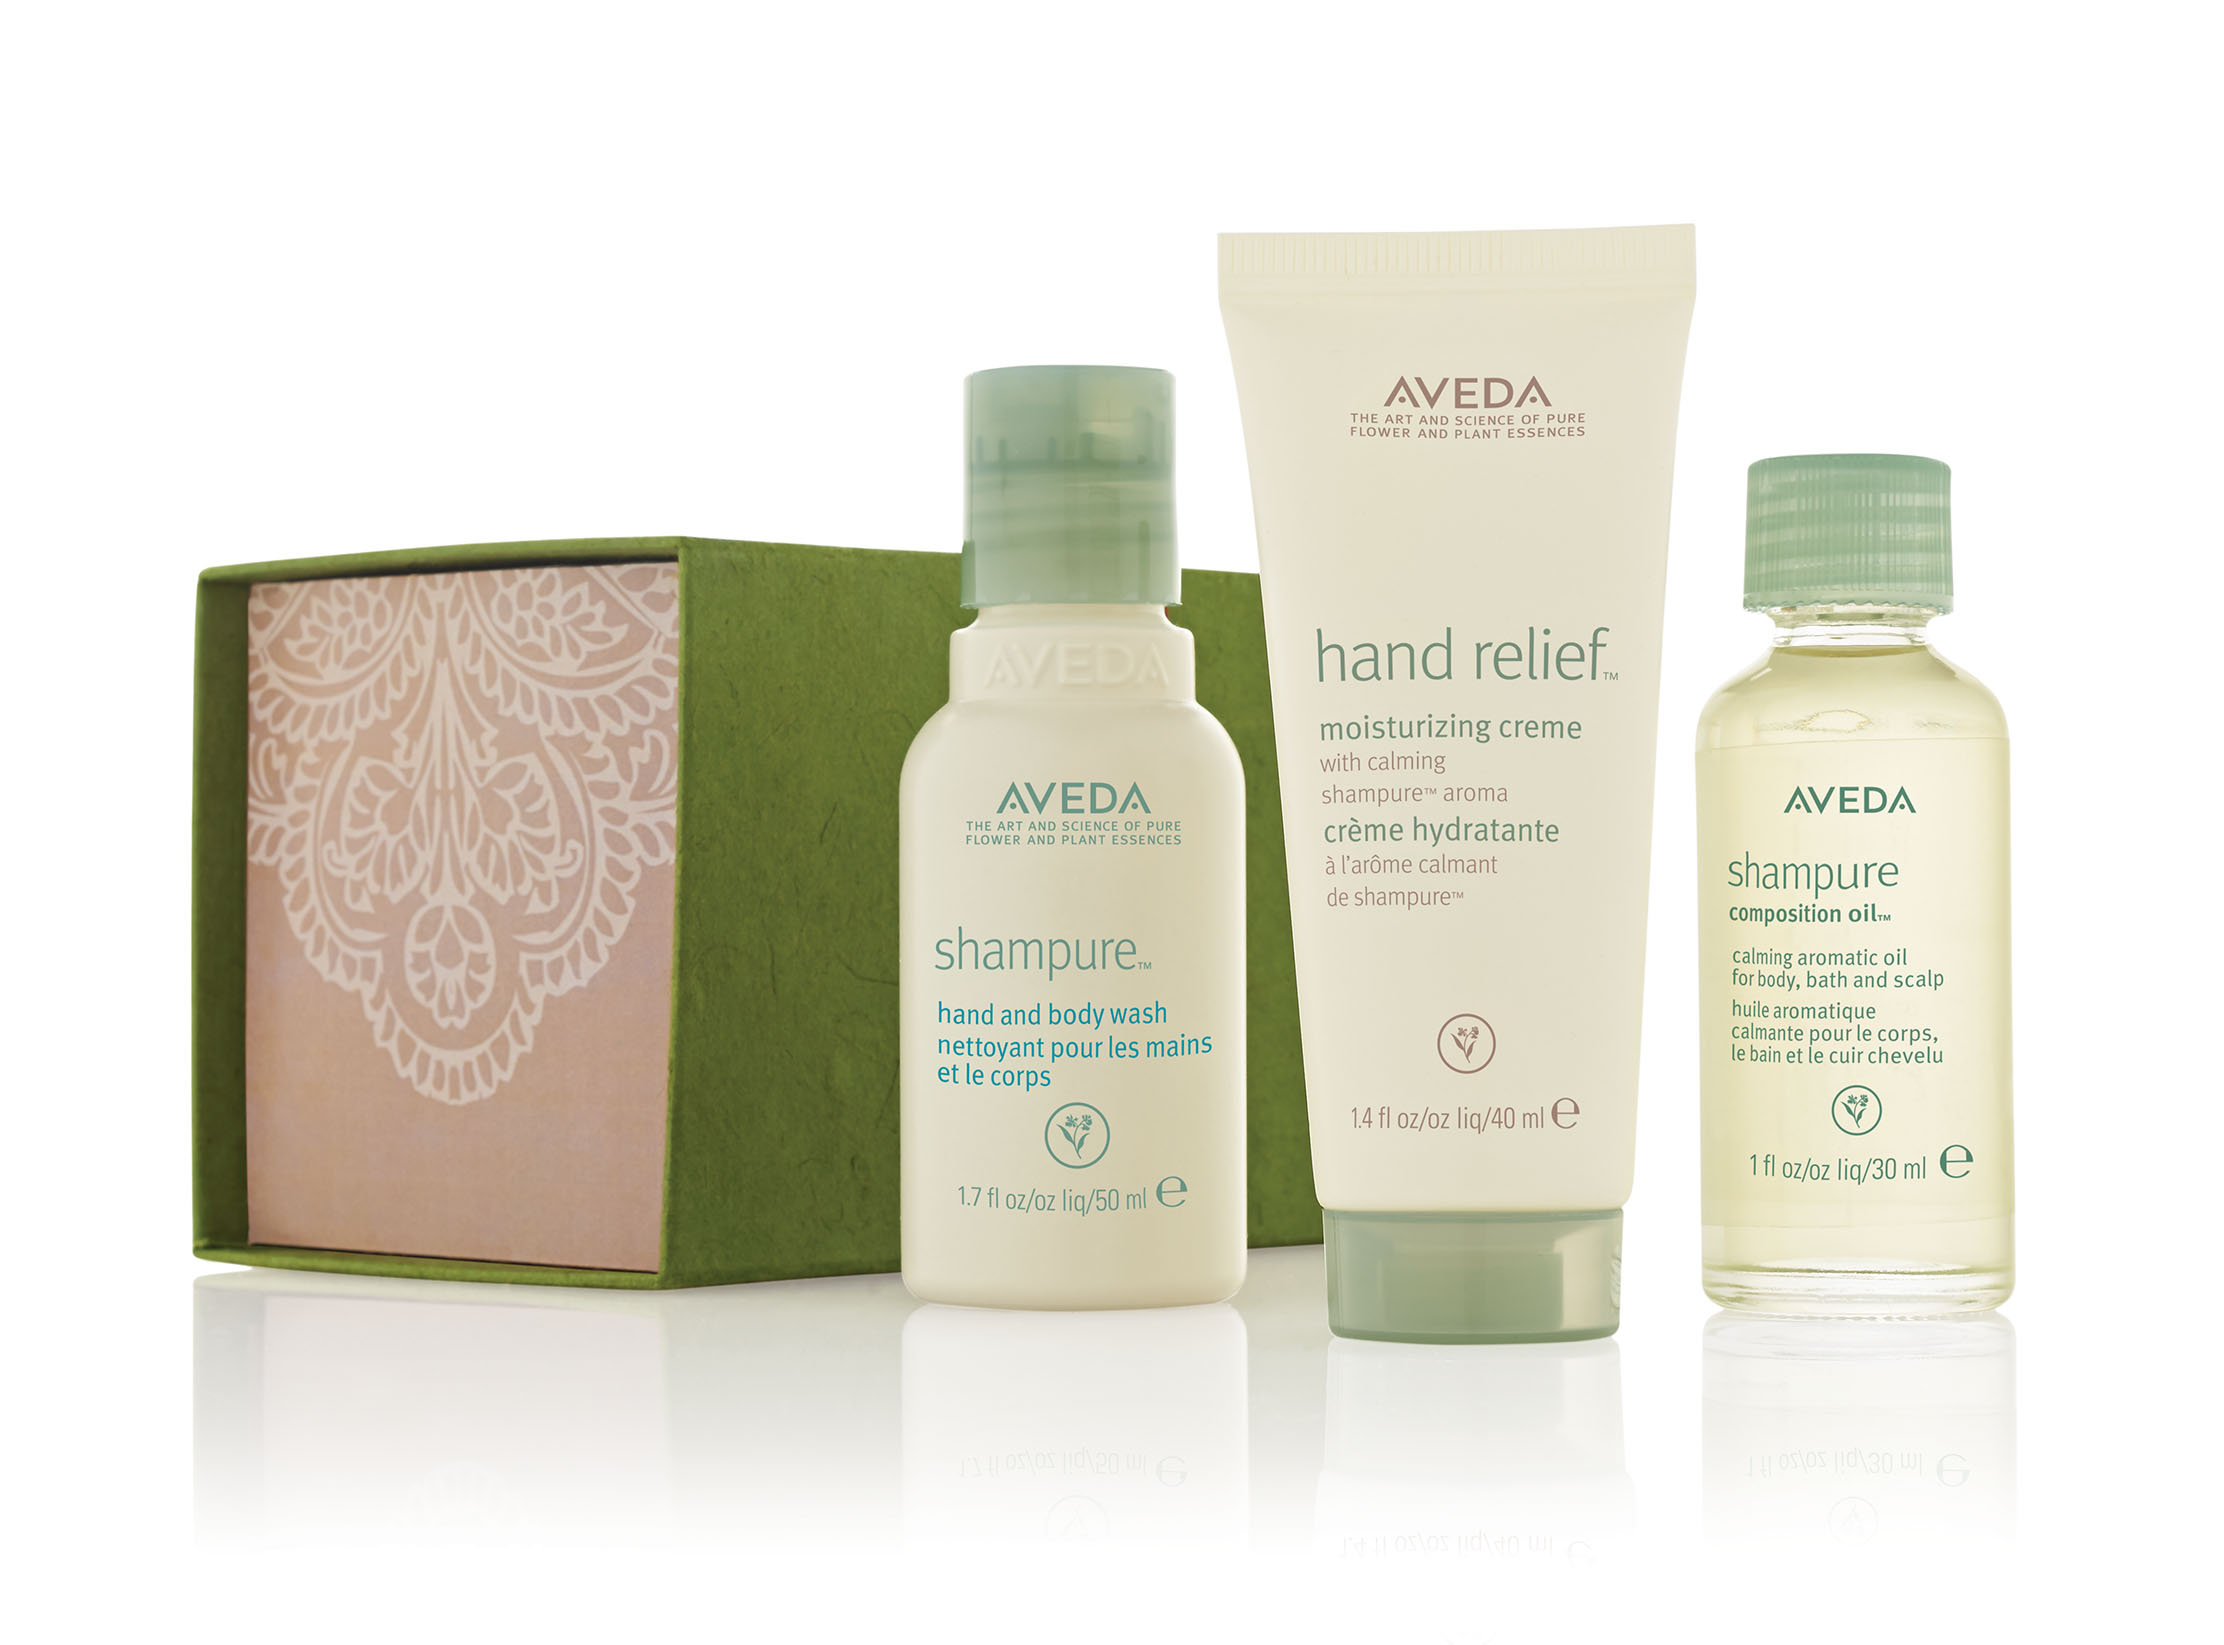 Aveda gifts - A Peaceful Journey is a Gift